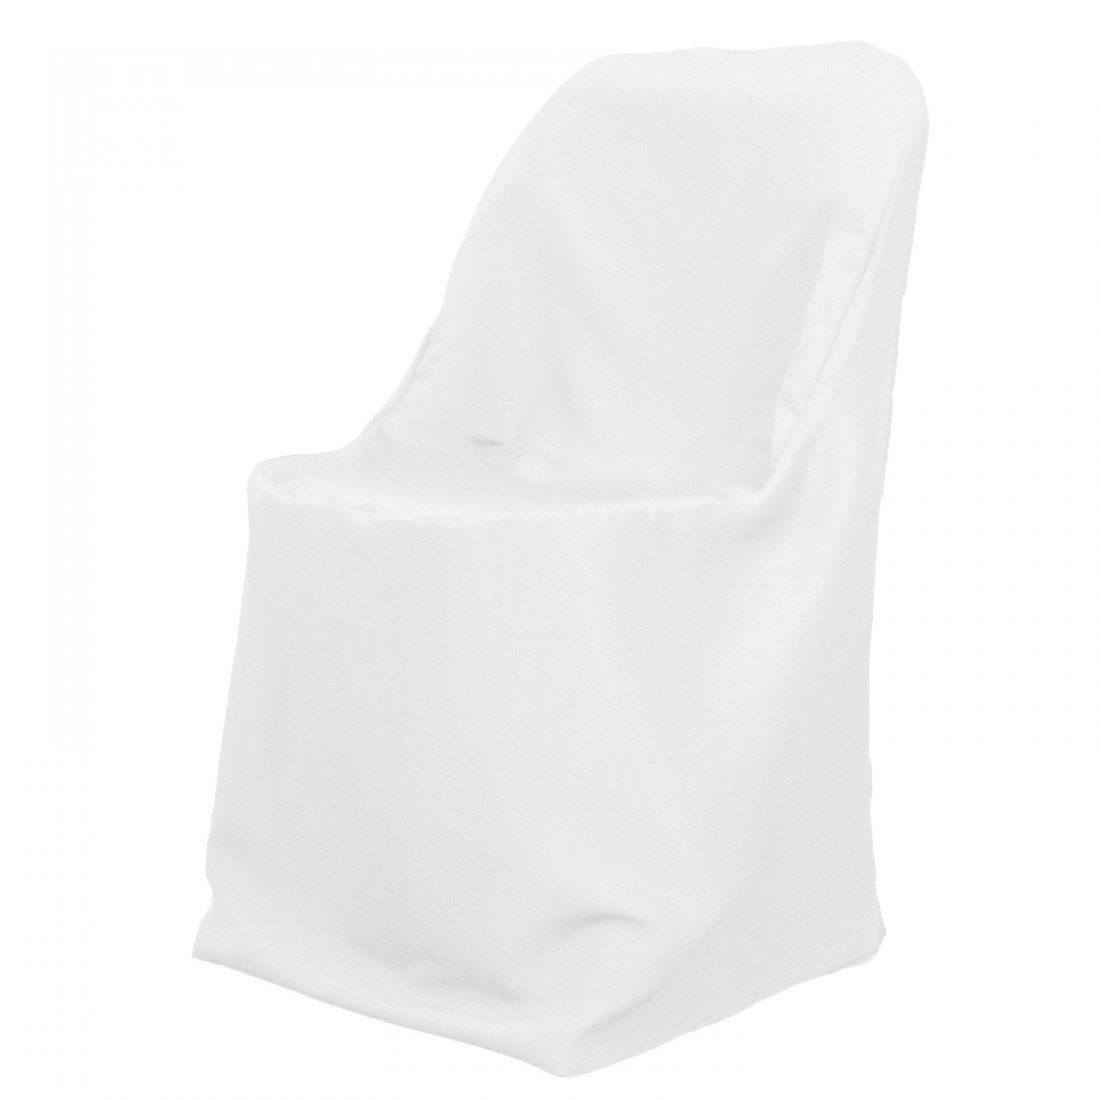 Craft And Party Premium Polyester Folding style Chair Cover - for Wedding or Banquet Use (10)